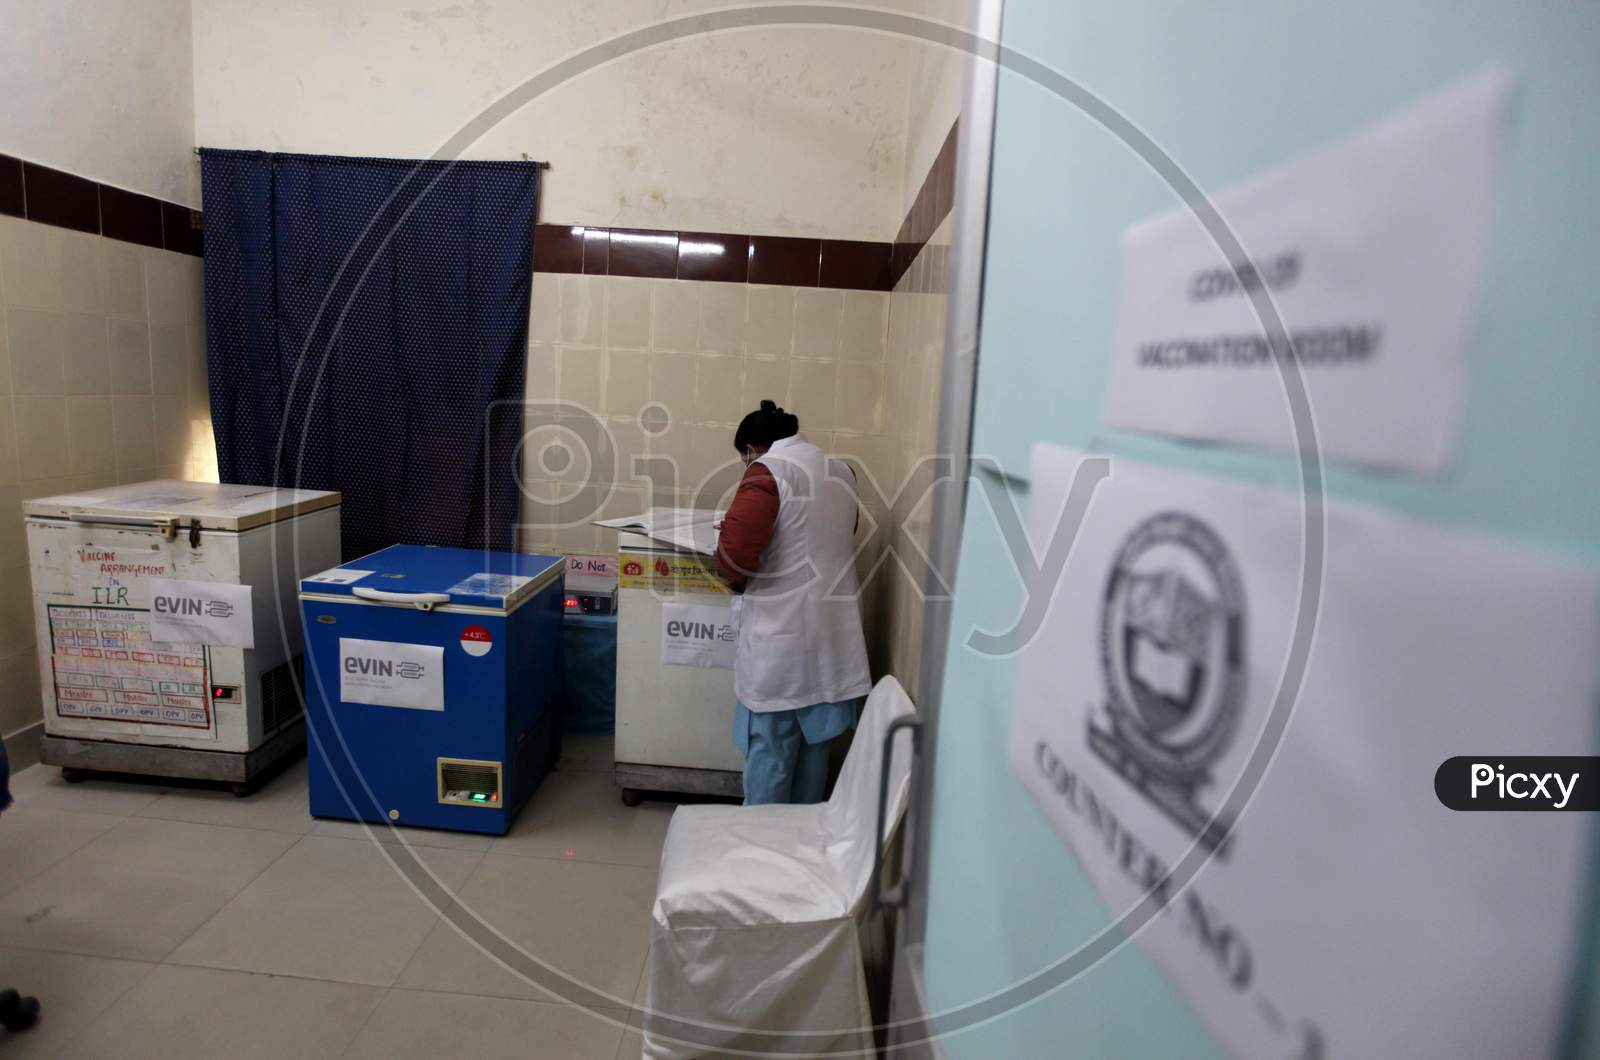 A healthcare worker make preparations inside a room at a vaccination center set up at a MCD maternity home ahead of a nationwide trial of a Covid-19 vaccine delivery system in New Delhi, India, on, Jan 1, 2021. India will test its Covid-19 vaccine delivery system with a nationwide trial on Jan 2.